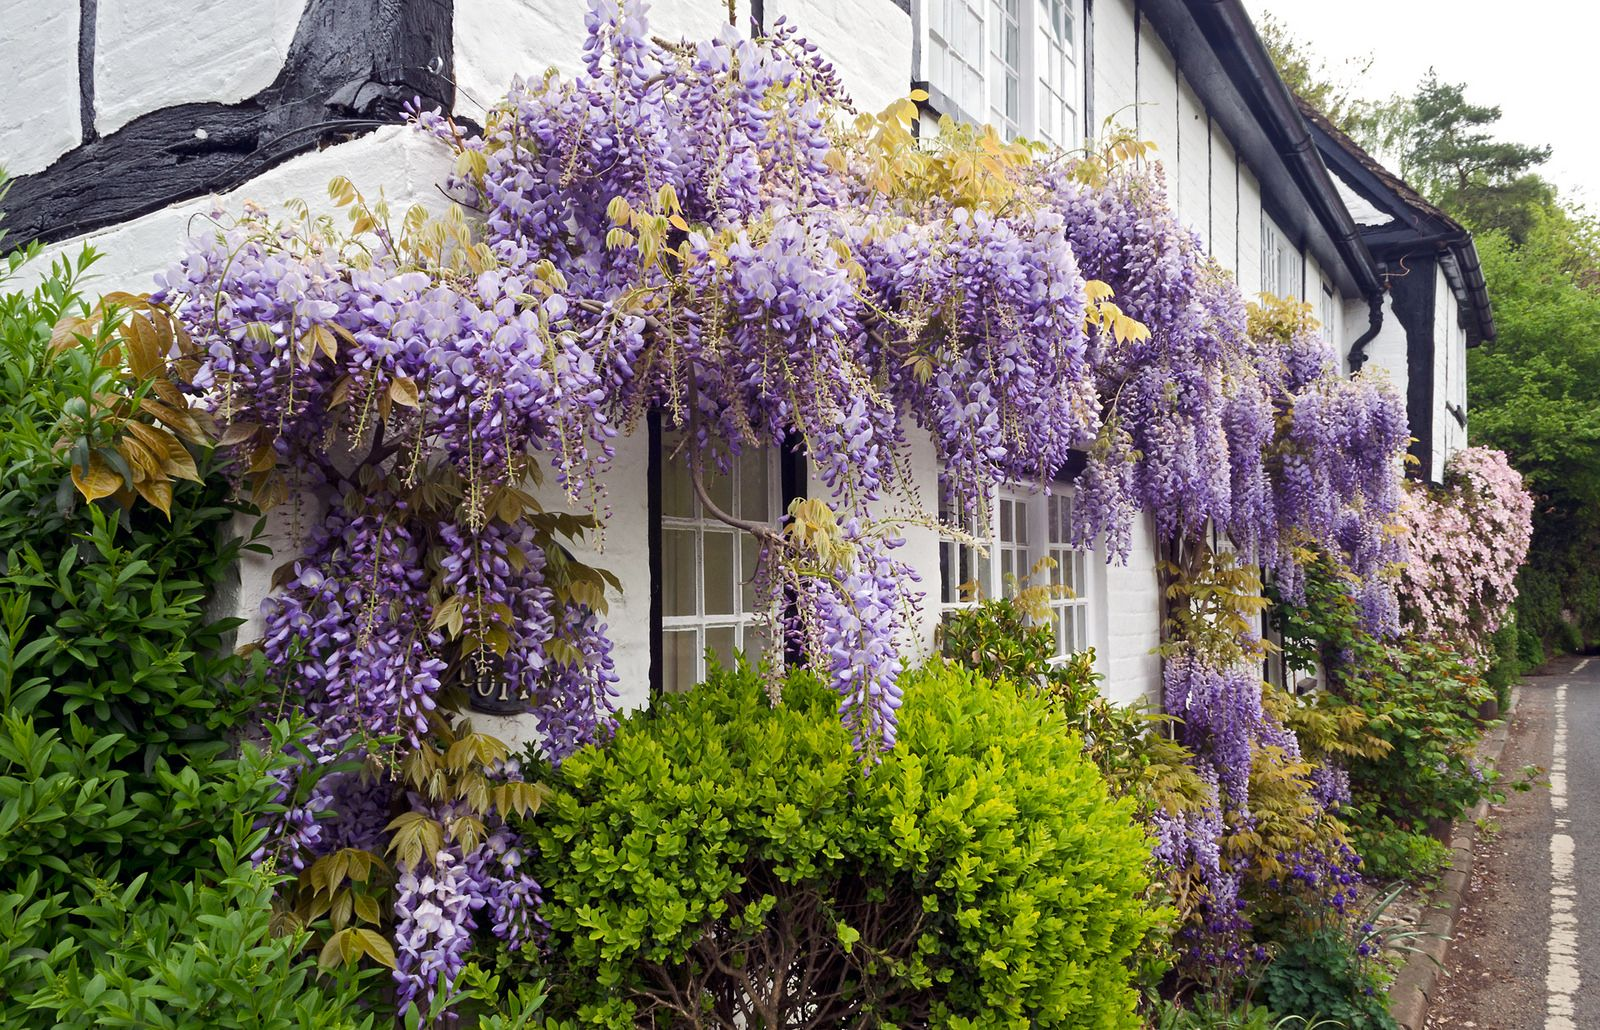 Flowering Wisteria And Clematis Cover Cottage Wall Hertfordshire Uk Clematis Wisteria Dream Garden